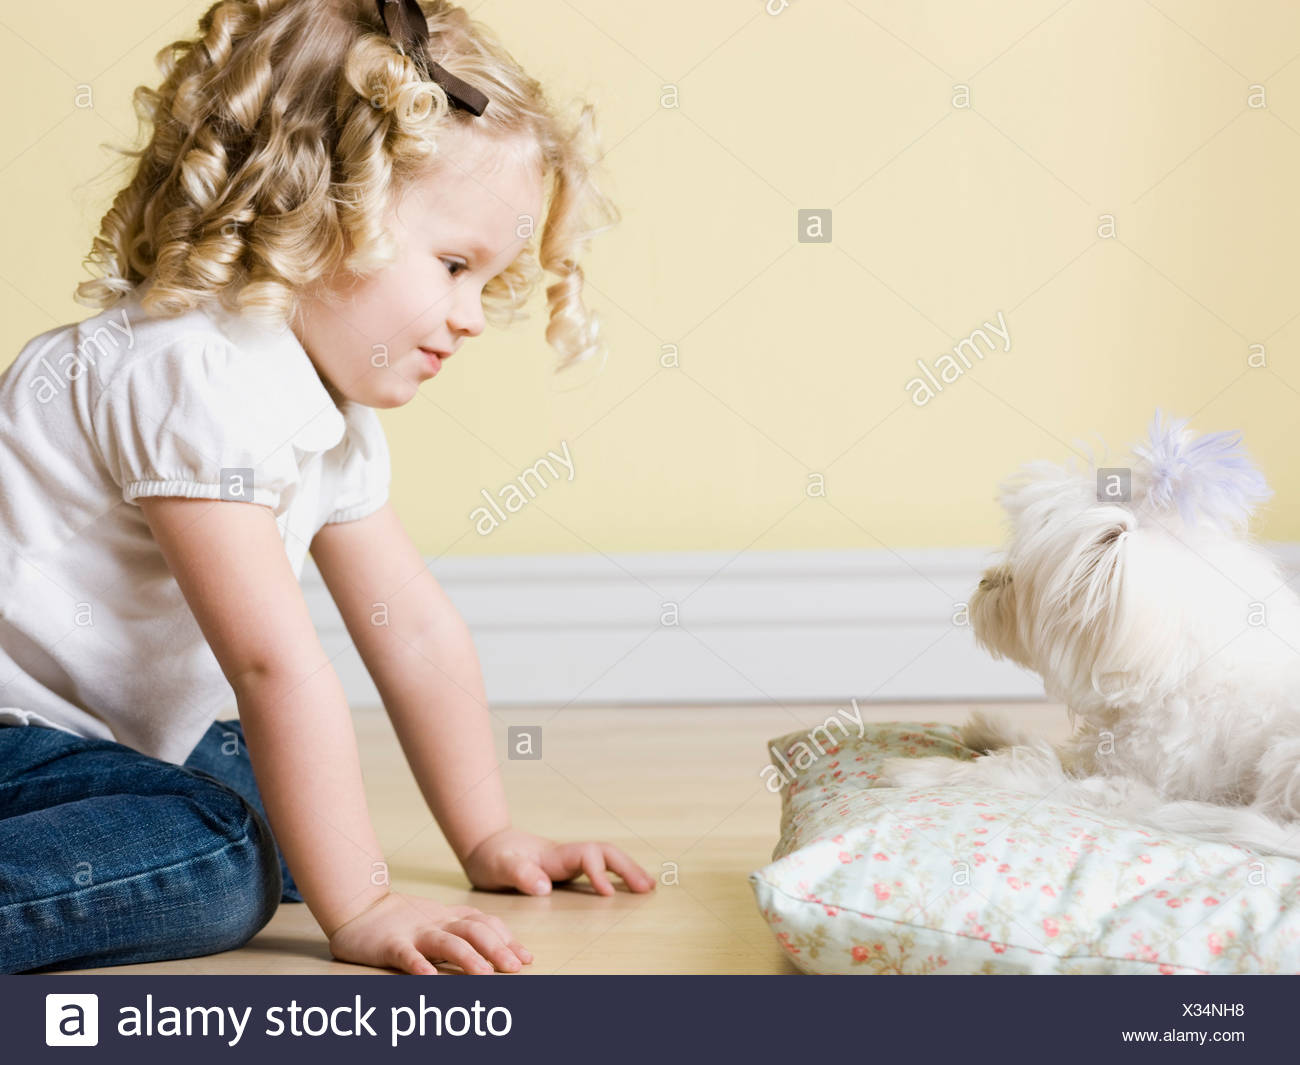 little girl with dog - Stock Image